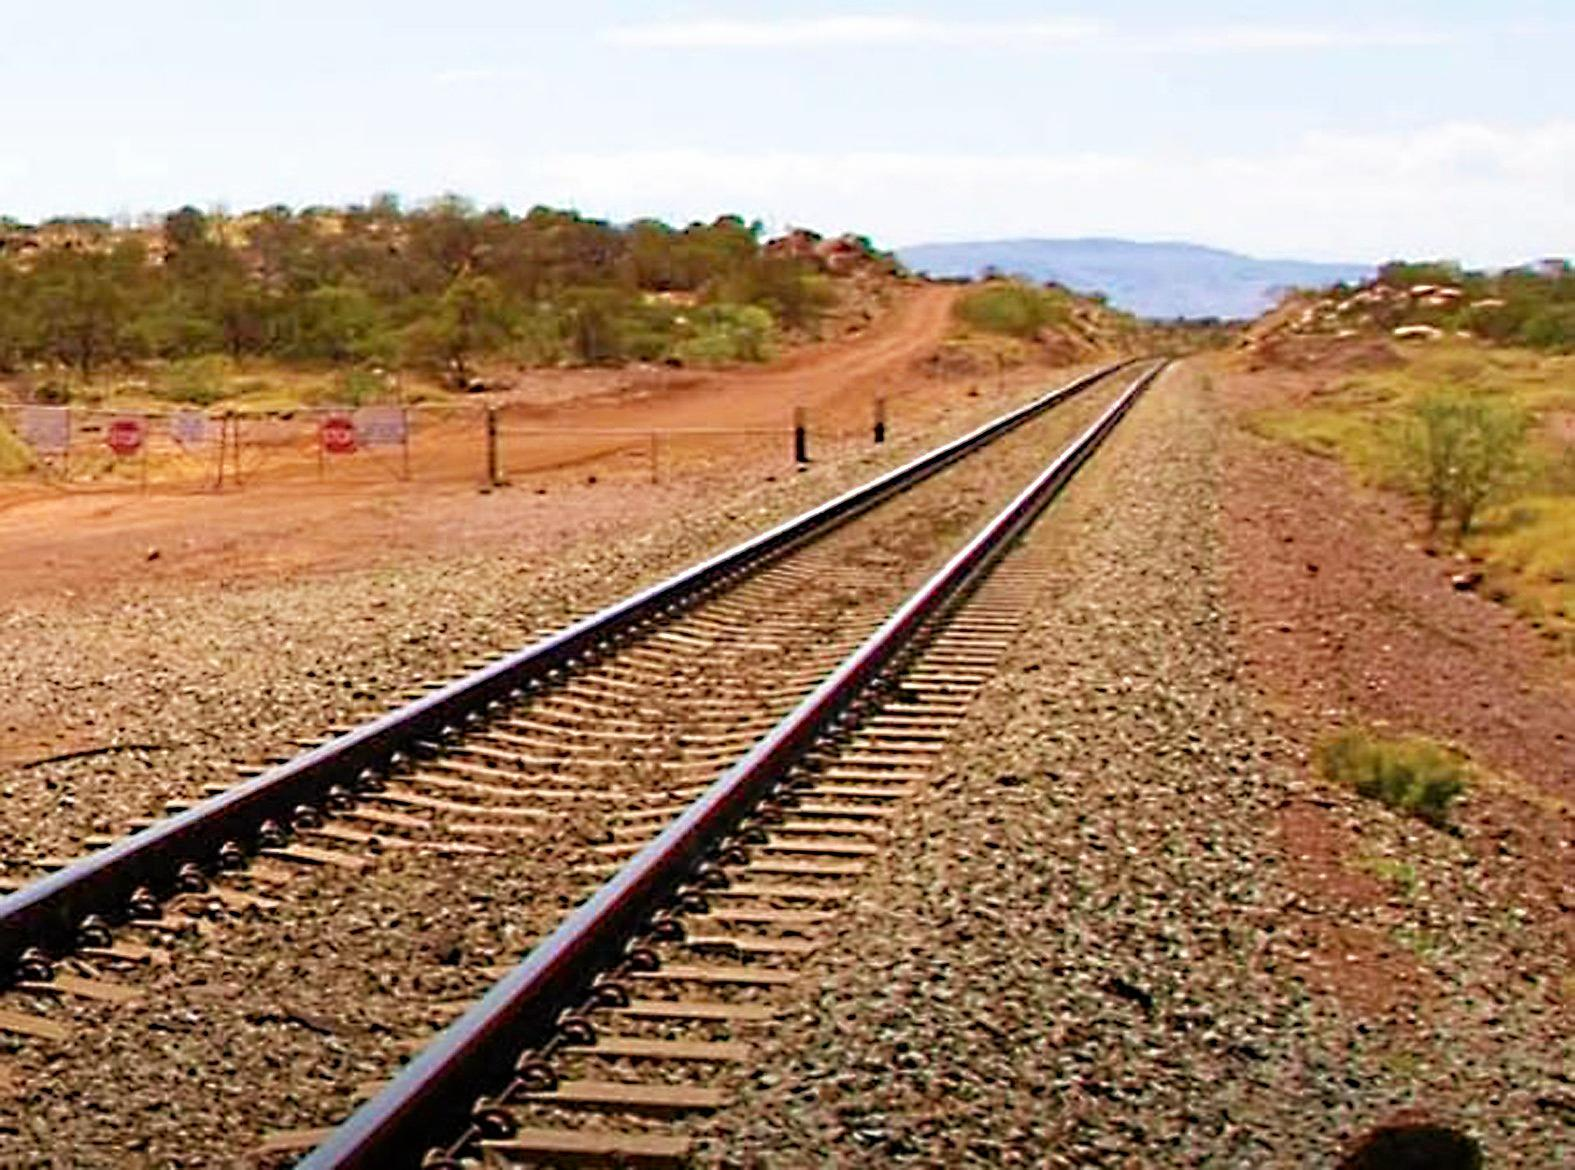 FULL SUPPORT: The Federal Government has committed $8.4 billion to start building the inland rail network from Brisbane to Melbourne.